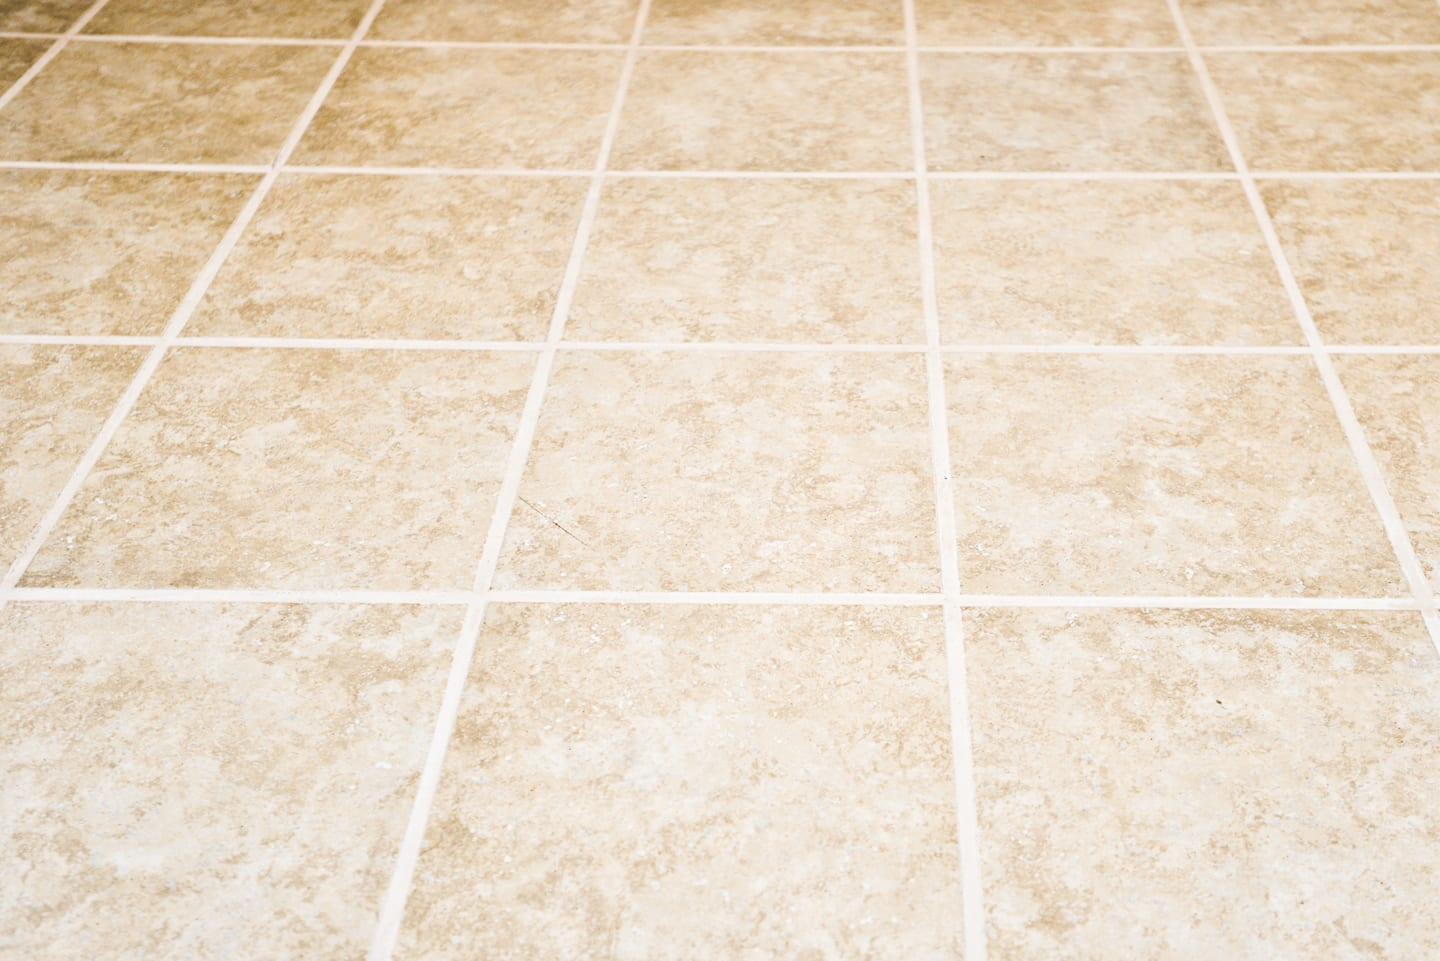 Who\'s Responsible for Sealing Grout on New Tile? | Angie\'s List